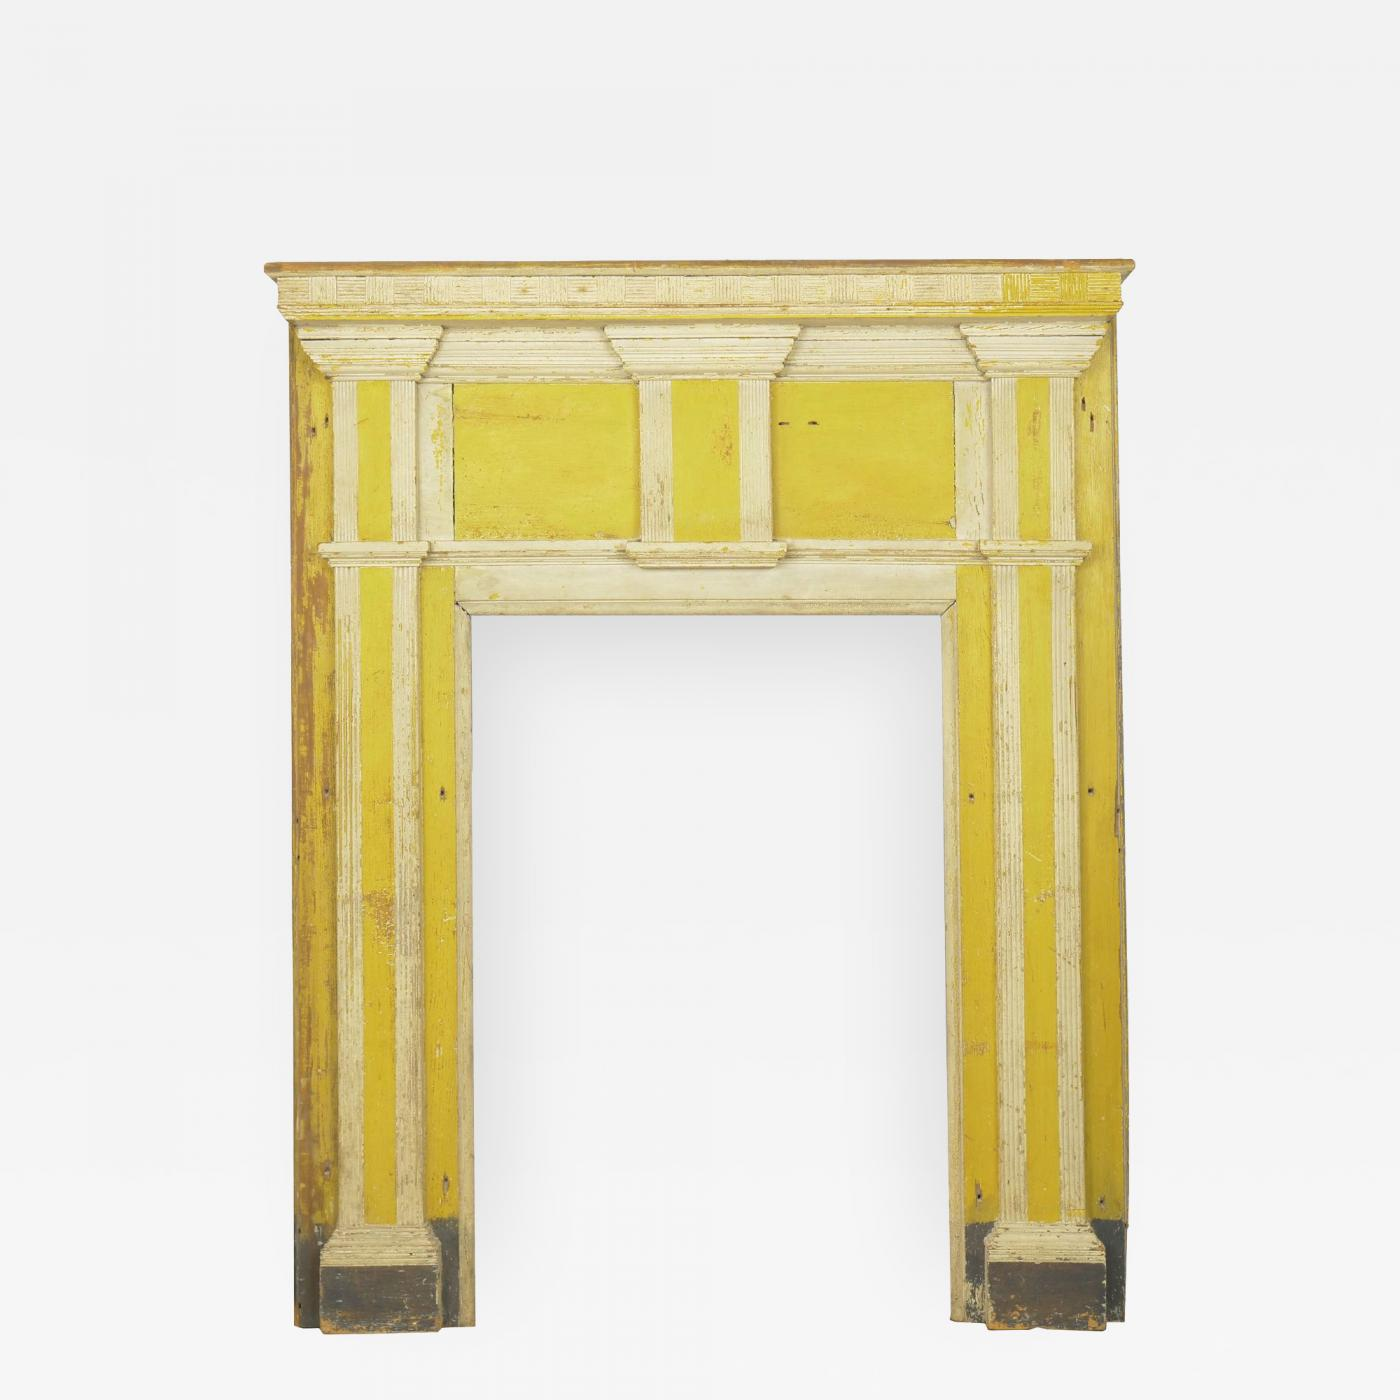 Fabulous Neoclassical Federal Antique Fireplace Surround Mantel In Yellow White Paint Interior Design Ideas Oxytryabchikinfo